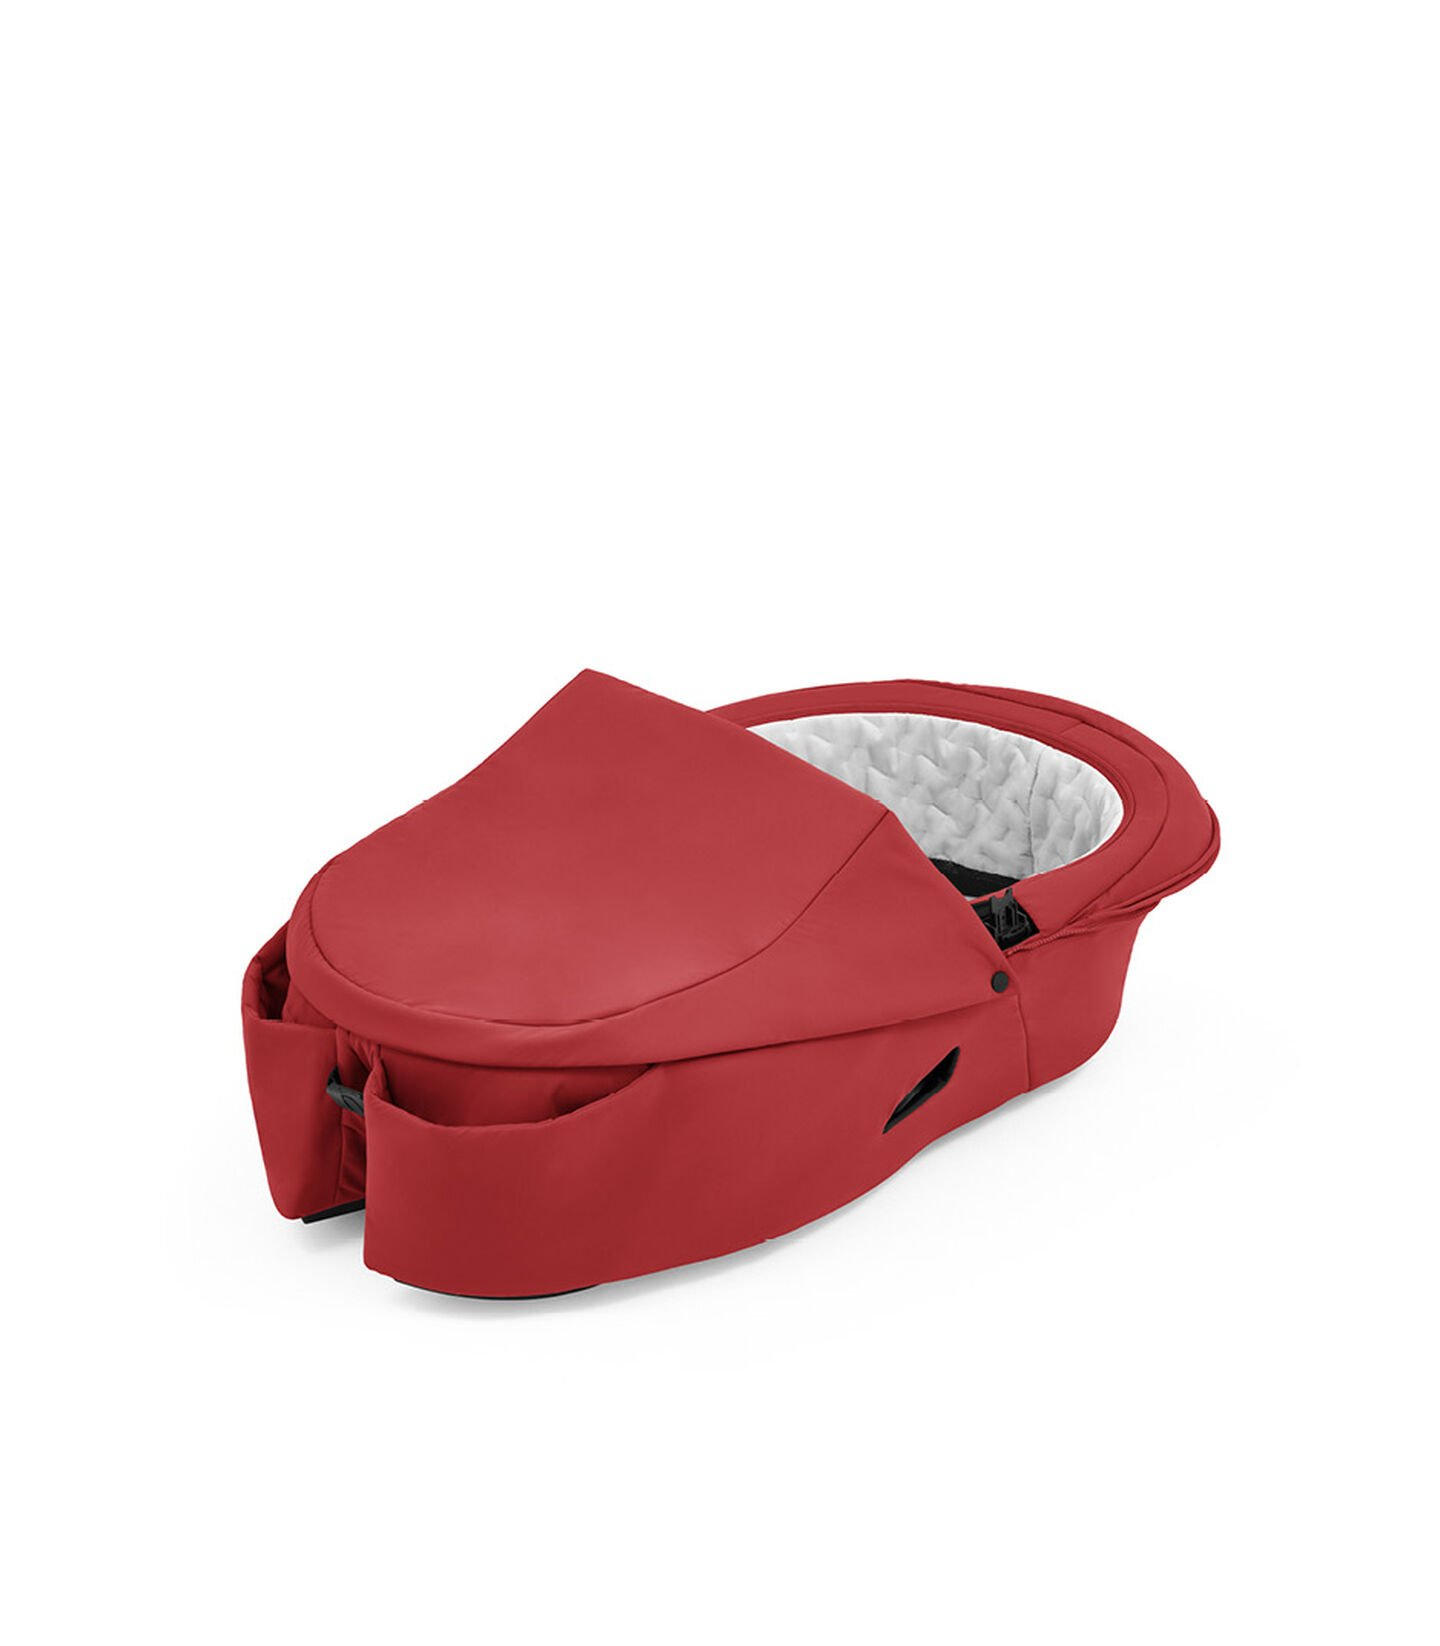 Stokke® Xplory® X reiswieg Ruby Red, Ruby Red, mainview view 1